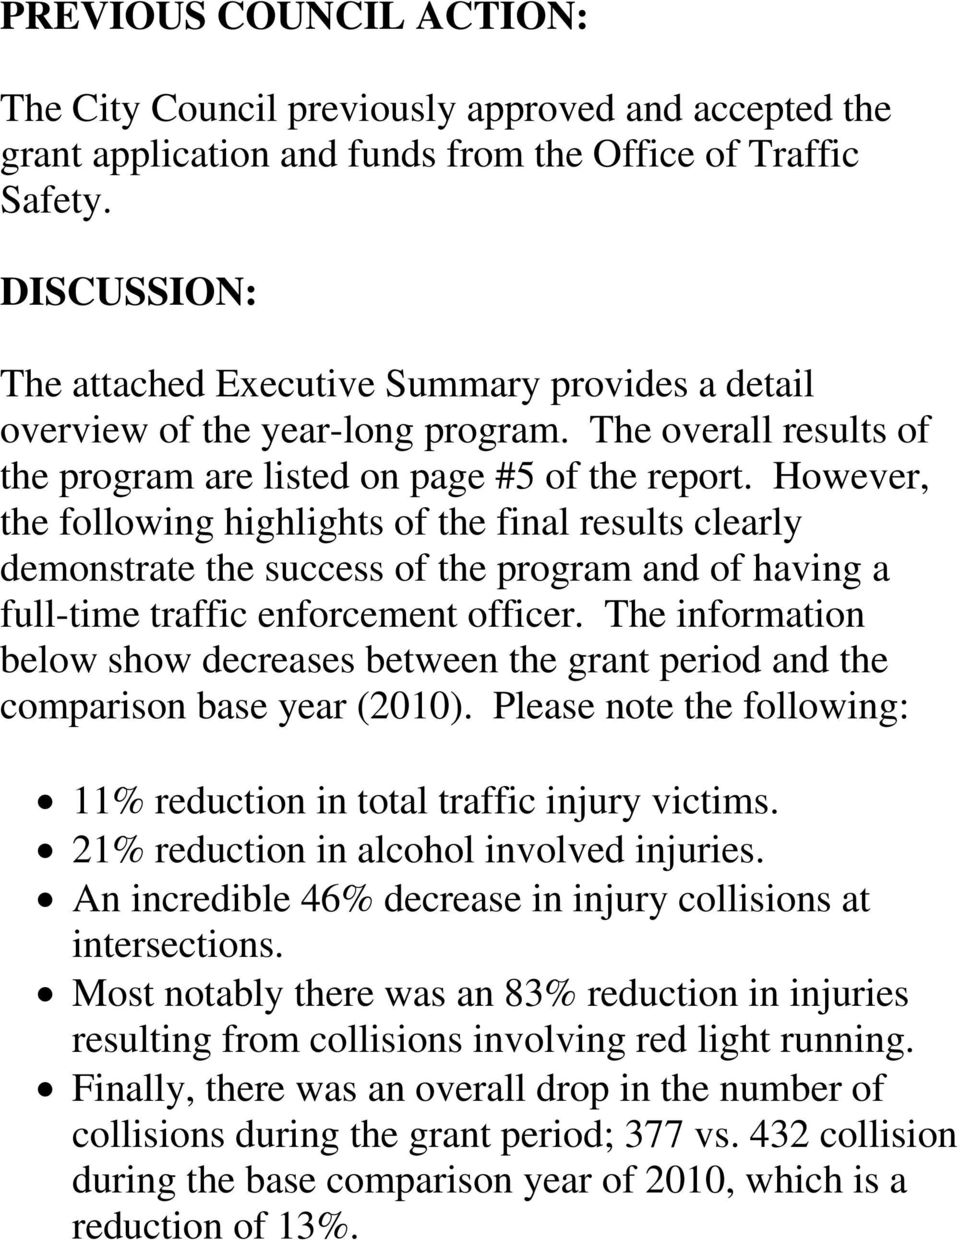 However, the following highlights of the final results clearly demonstrate the success of the program and of having a full-time traffic enforcement officer.